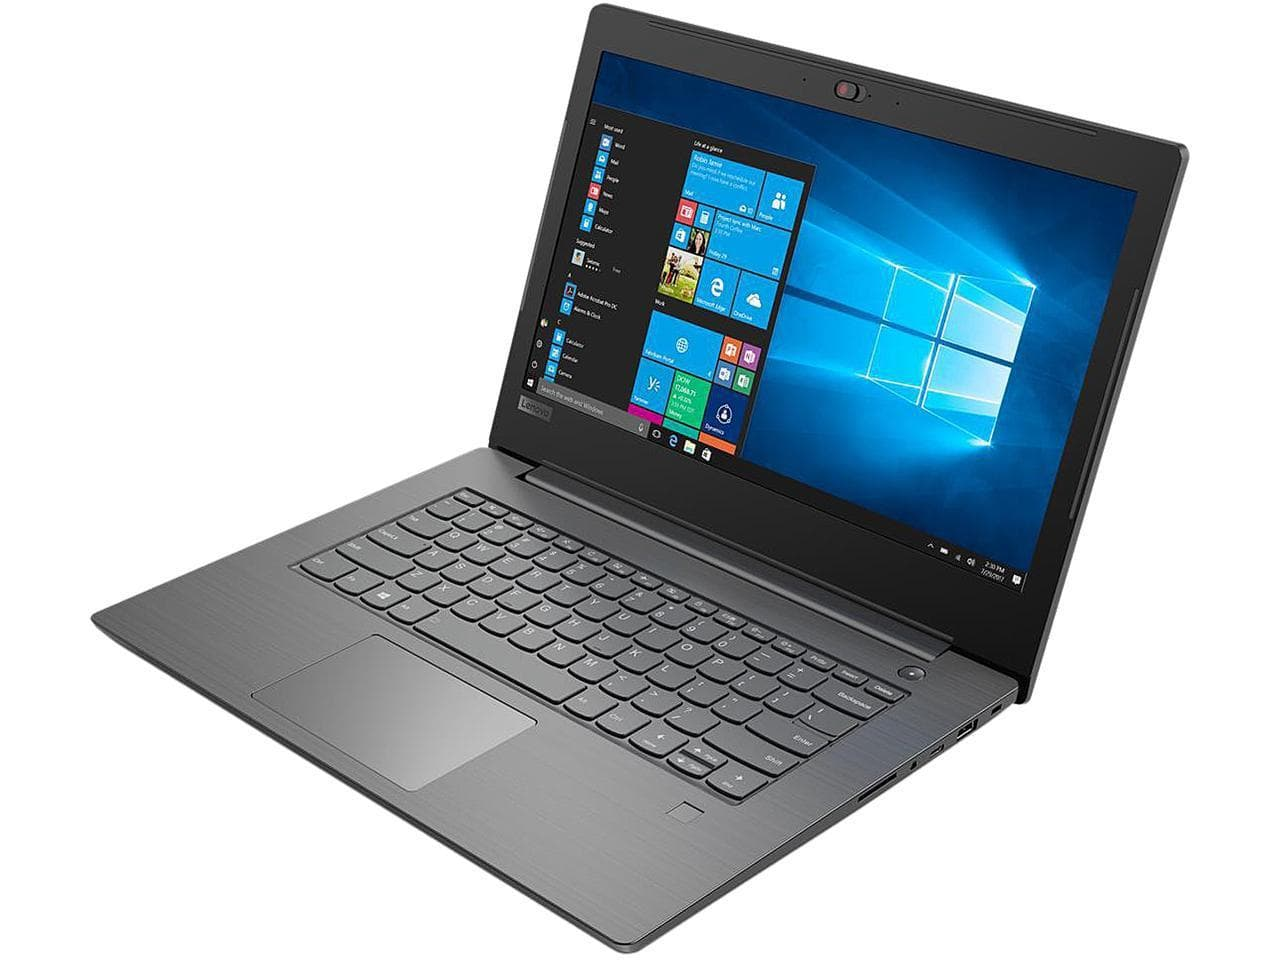 lenovo ideapad v330 14 laptop ryzen 2500u 8gb ddr4 256gb ssd